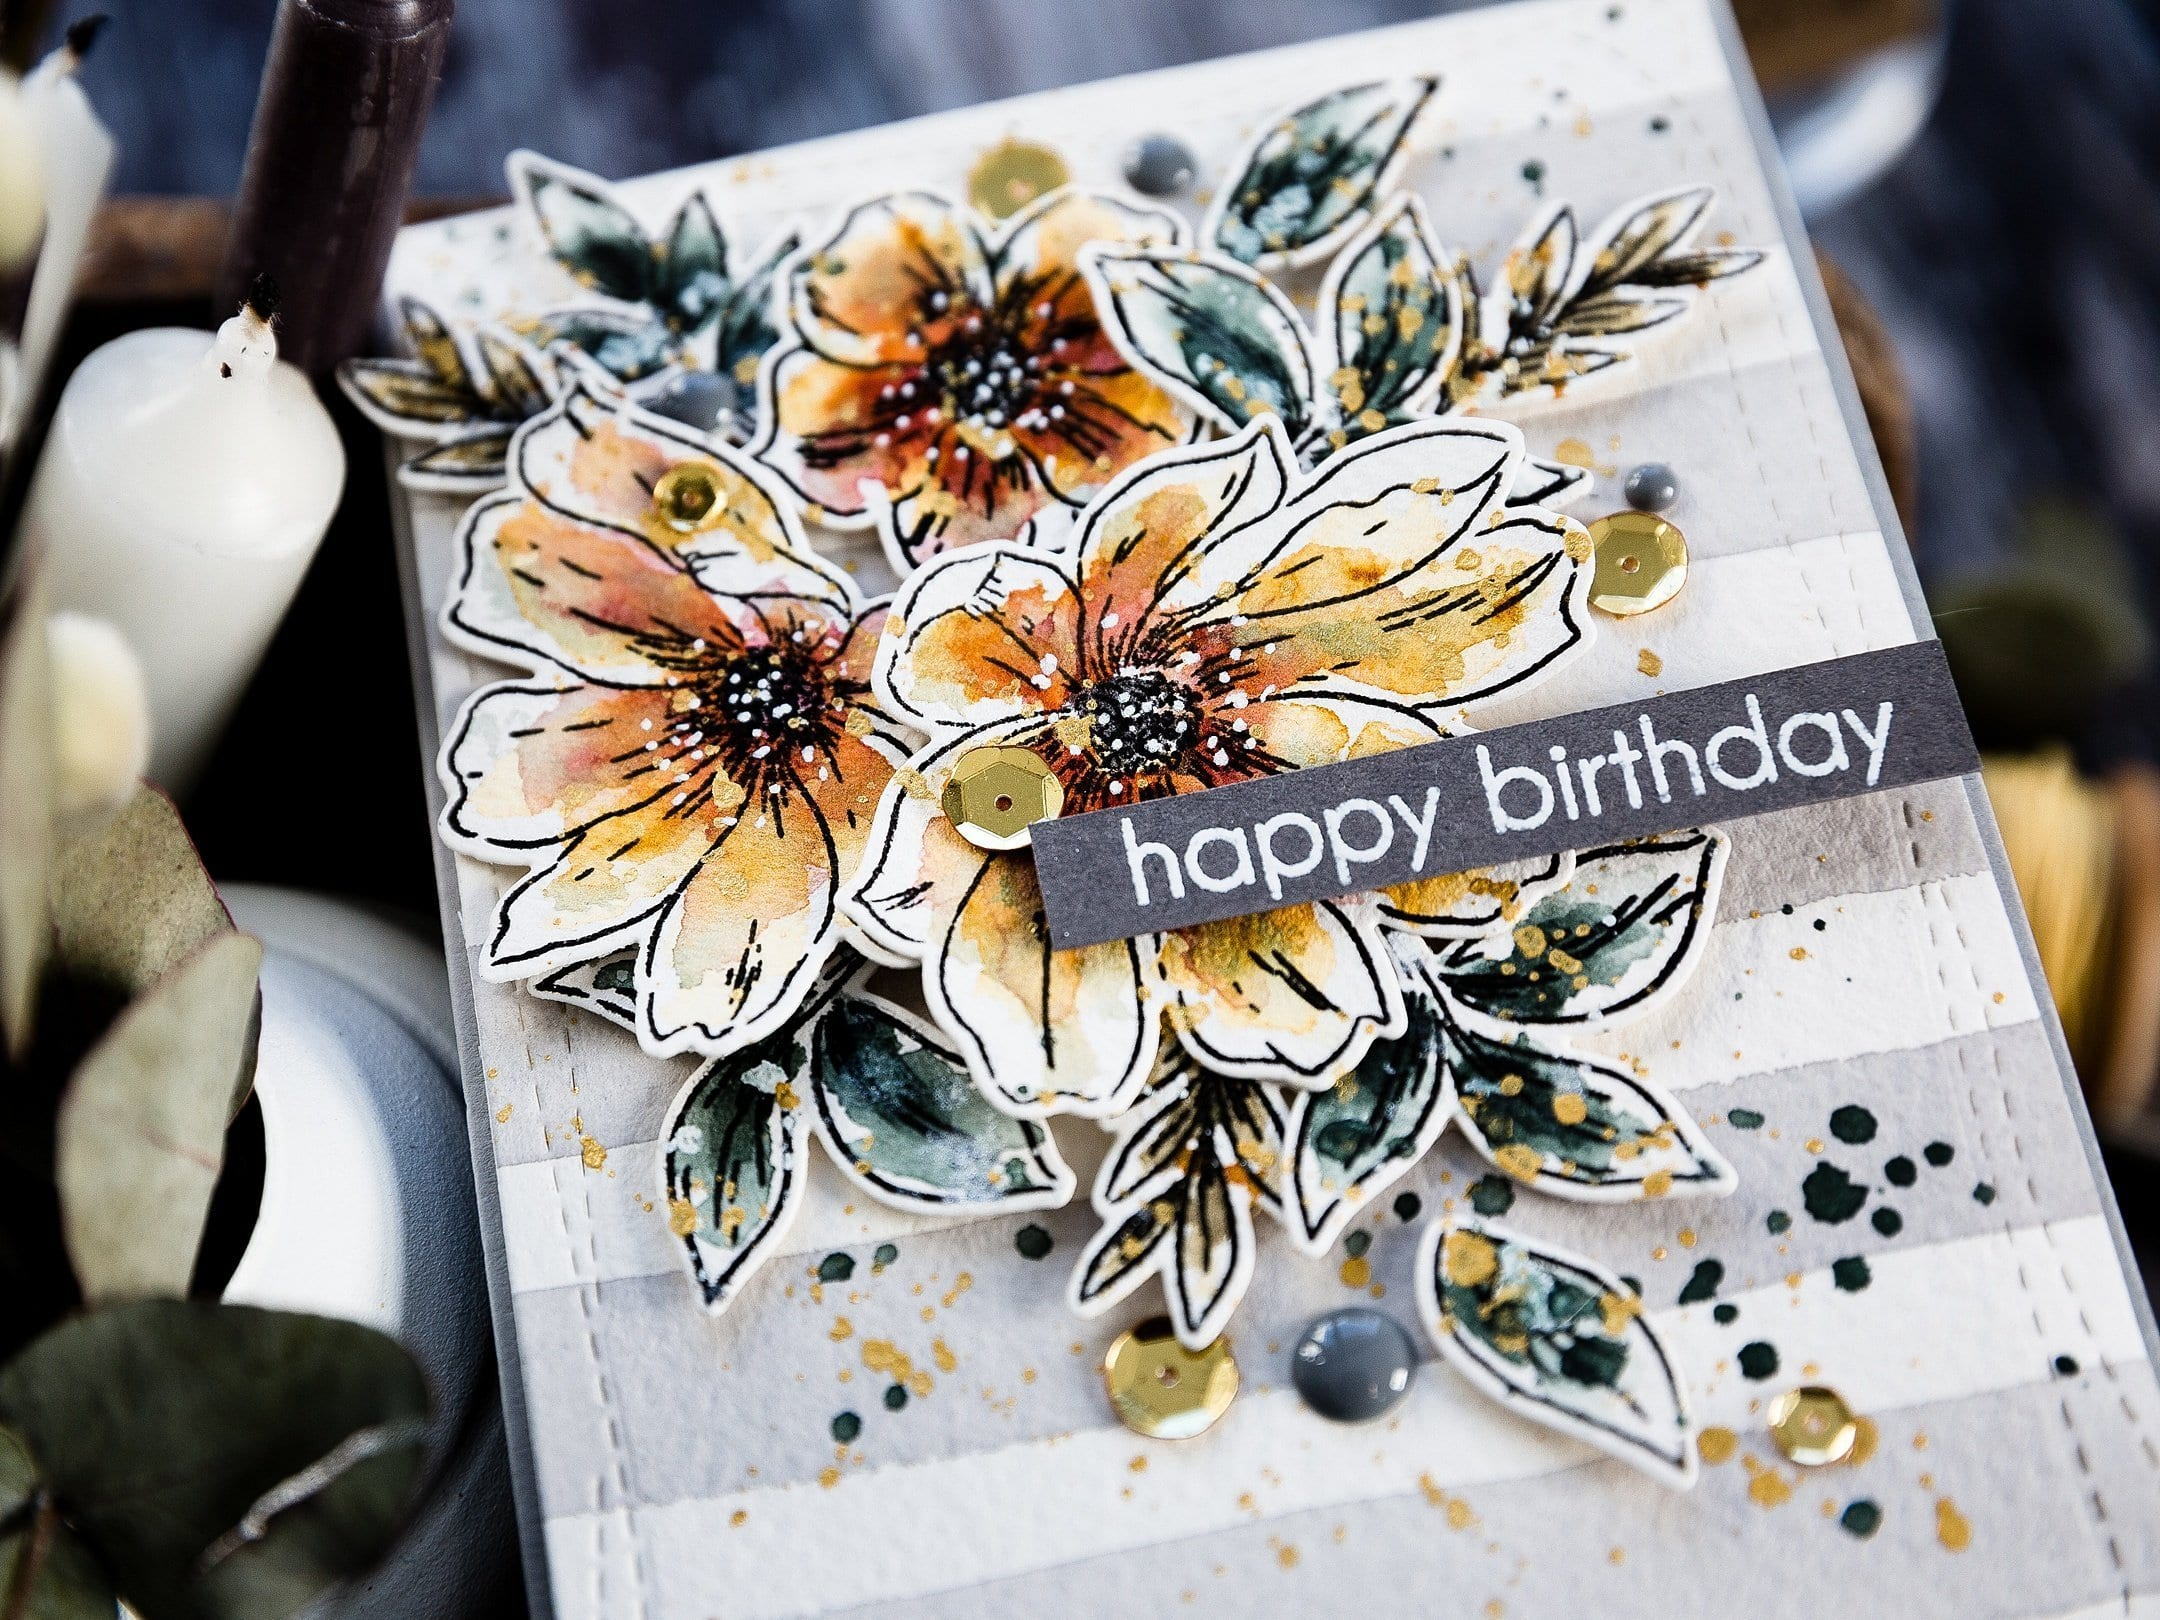 Watercoloured, floral, die cut, handmade birthday card by Debby Hughes using supplies from Altenew. Find out more here: https://limedoodledesign.com/2019/04/altenew-5th-anniversary-blog-hop-day-4-giveaway/